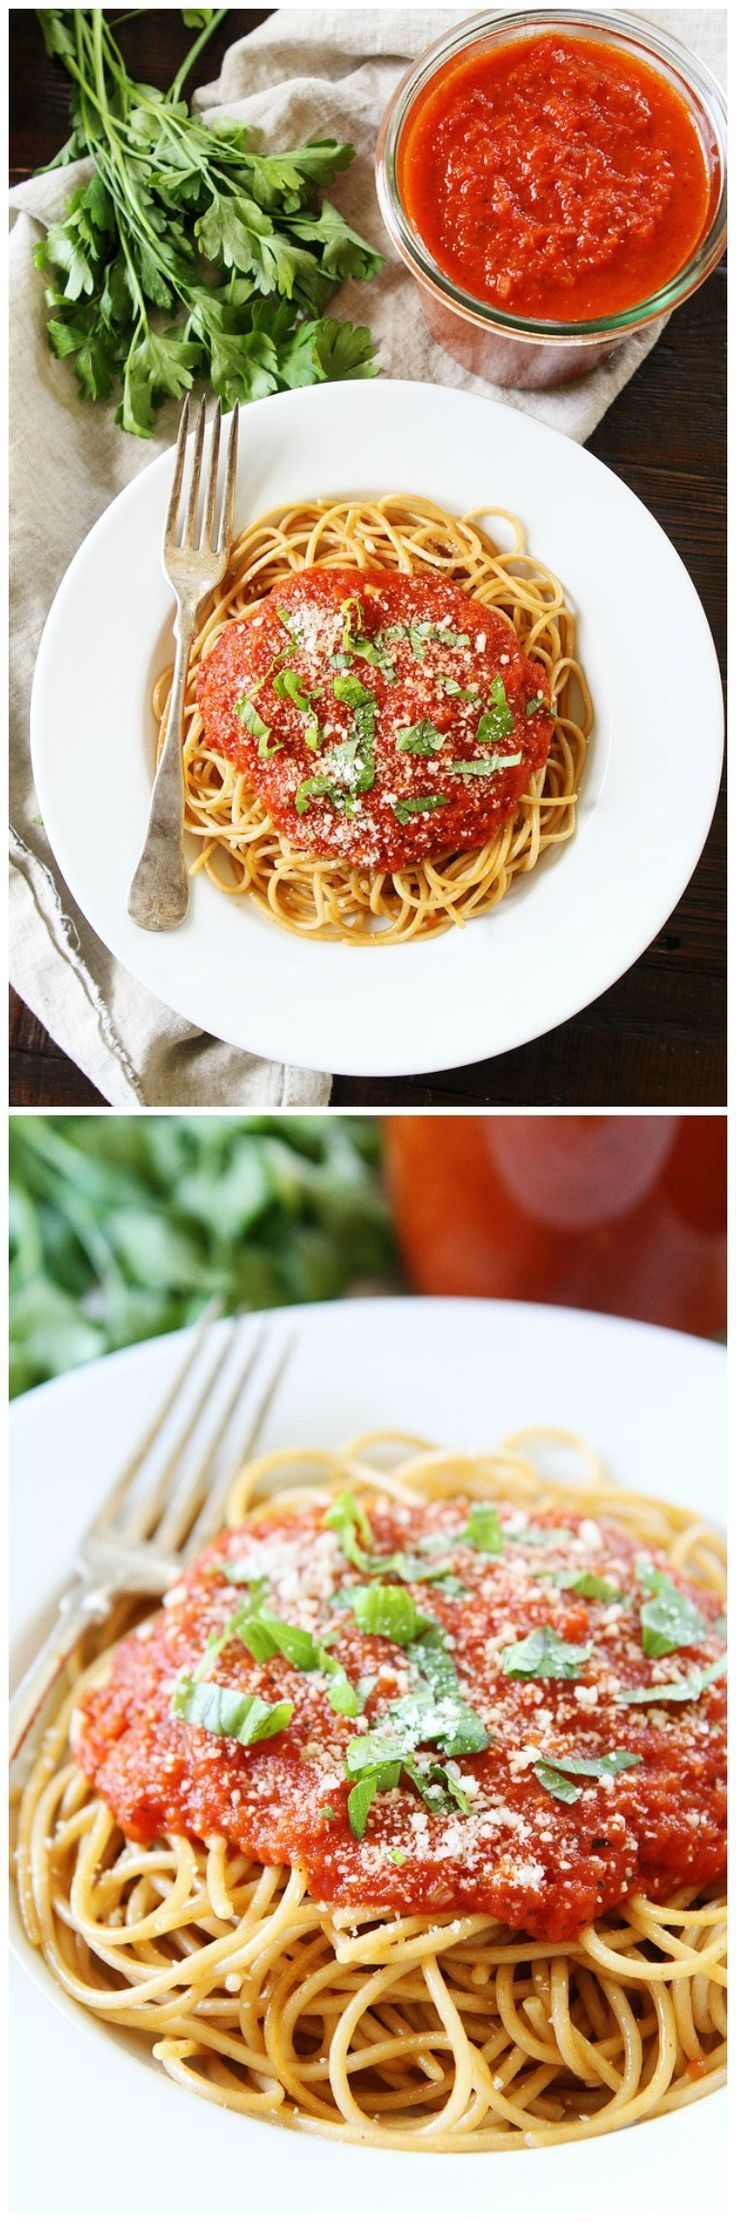 Slow Cooker Marinara Sauce Recipe on twopeasandtheirpo... This rich and hearty marinara sauce has the BEST flavor because it is made in the slow cooker. You will love this simple sauce! And it freezes well too!